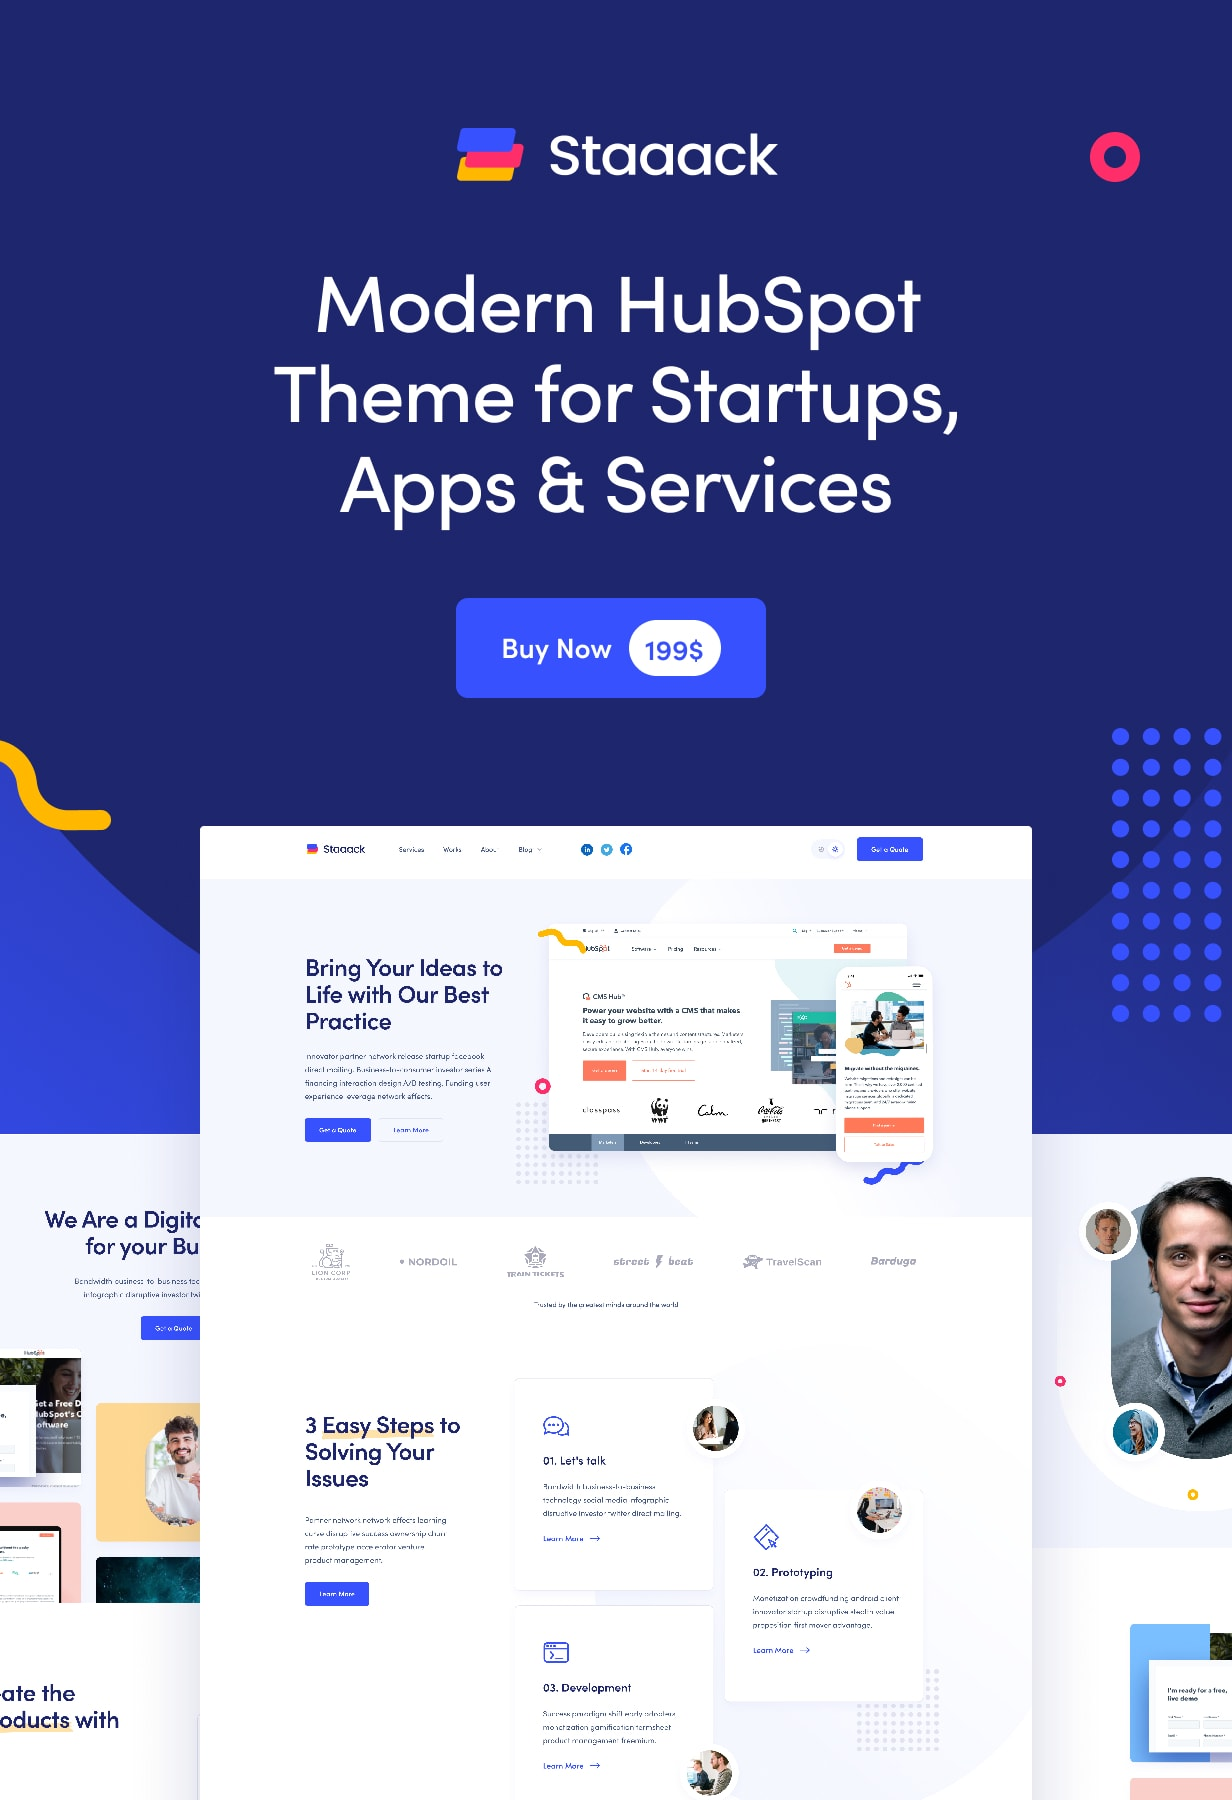 Staaack - Modern HubSpot Theme for Startups, Apps & Services - 1